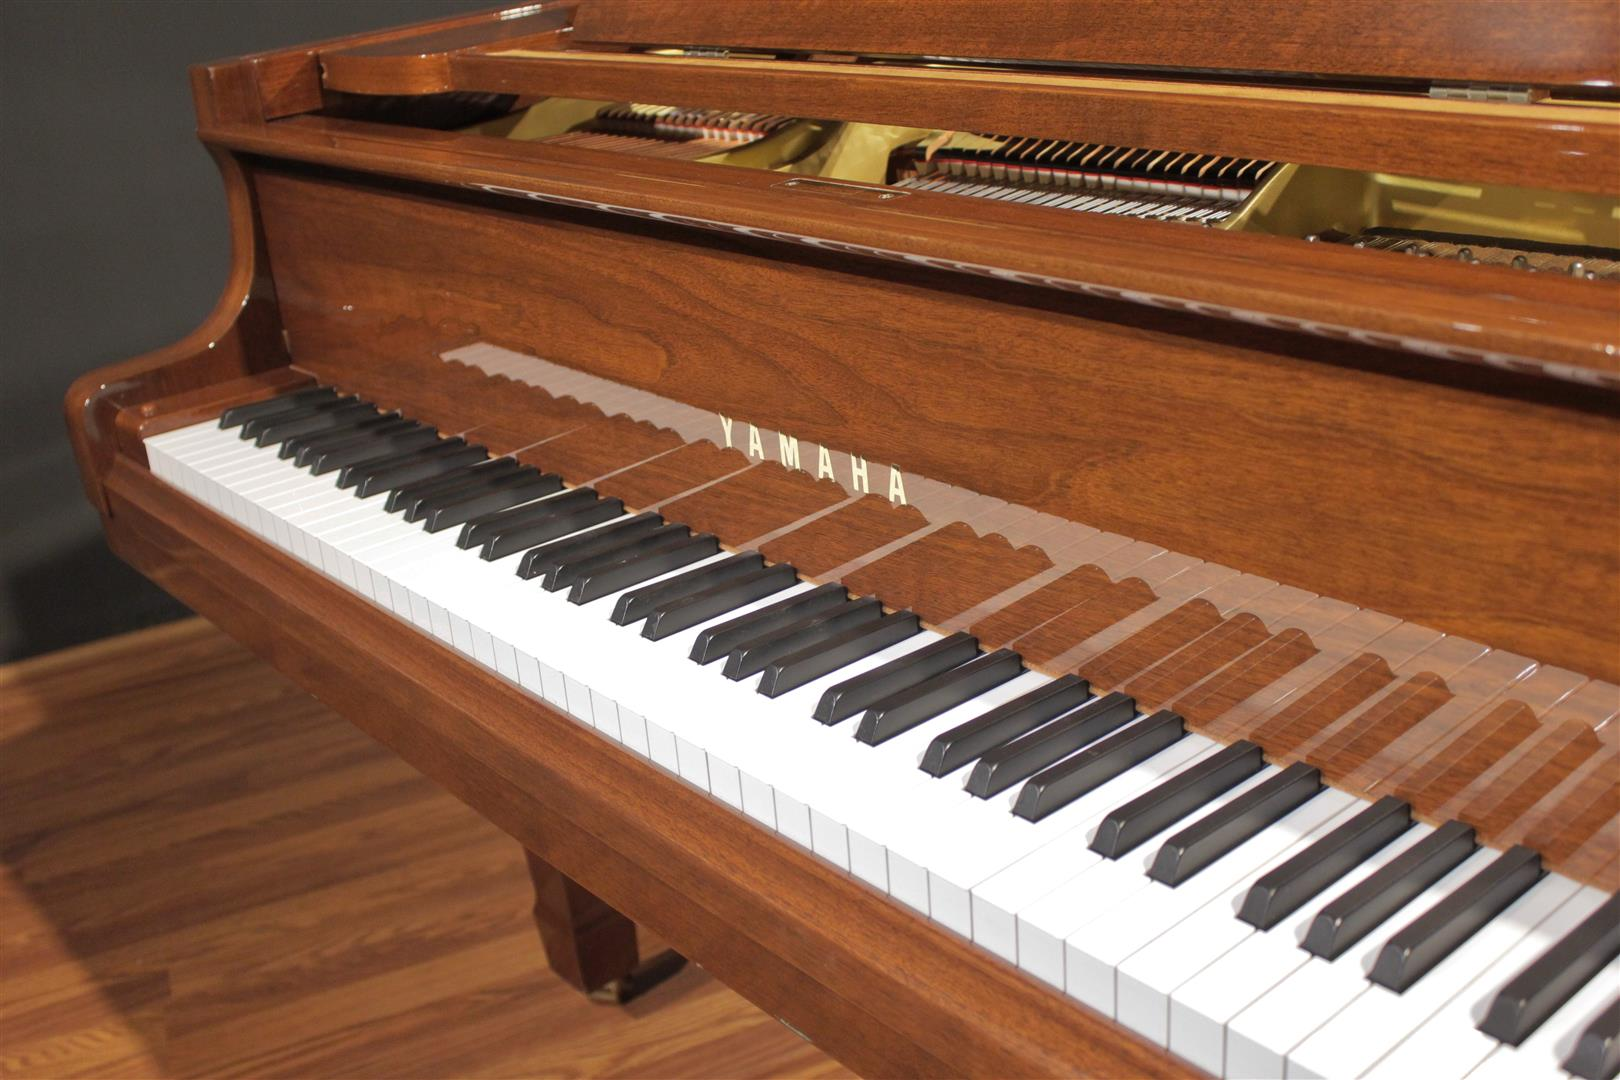 Yamaha G Grand Piano Serial Number